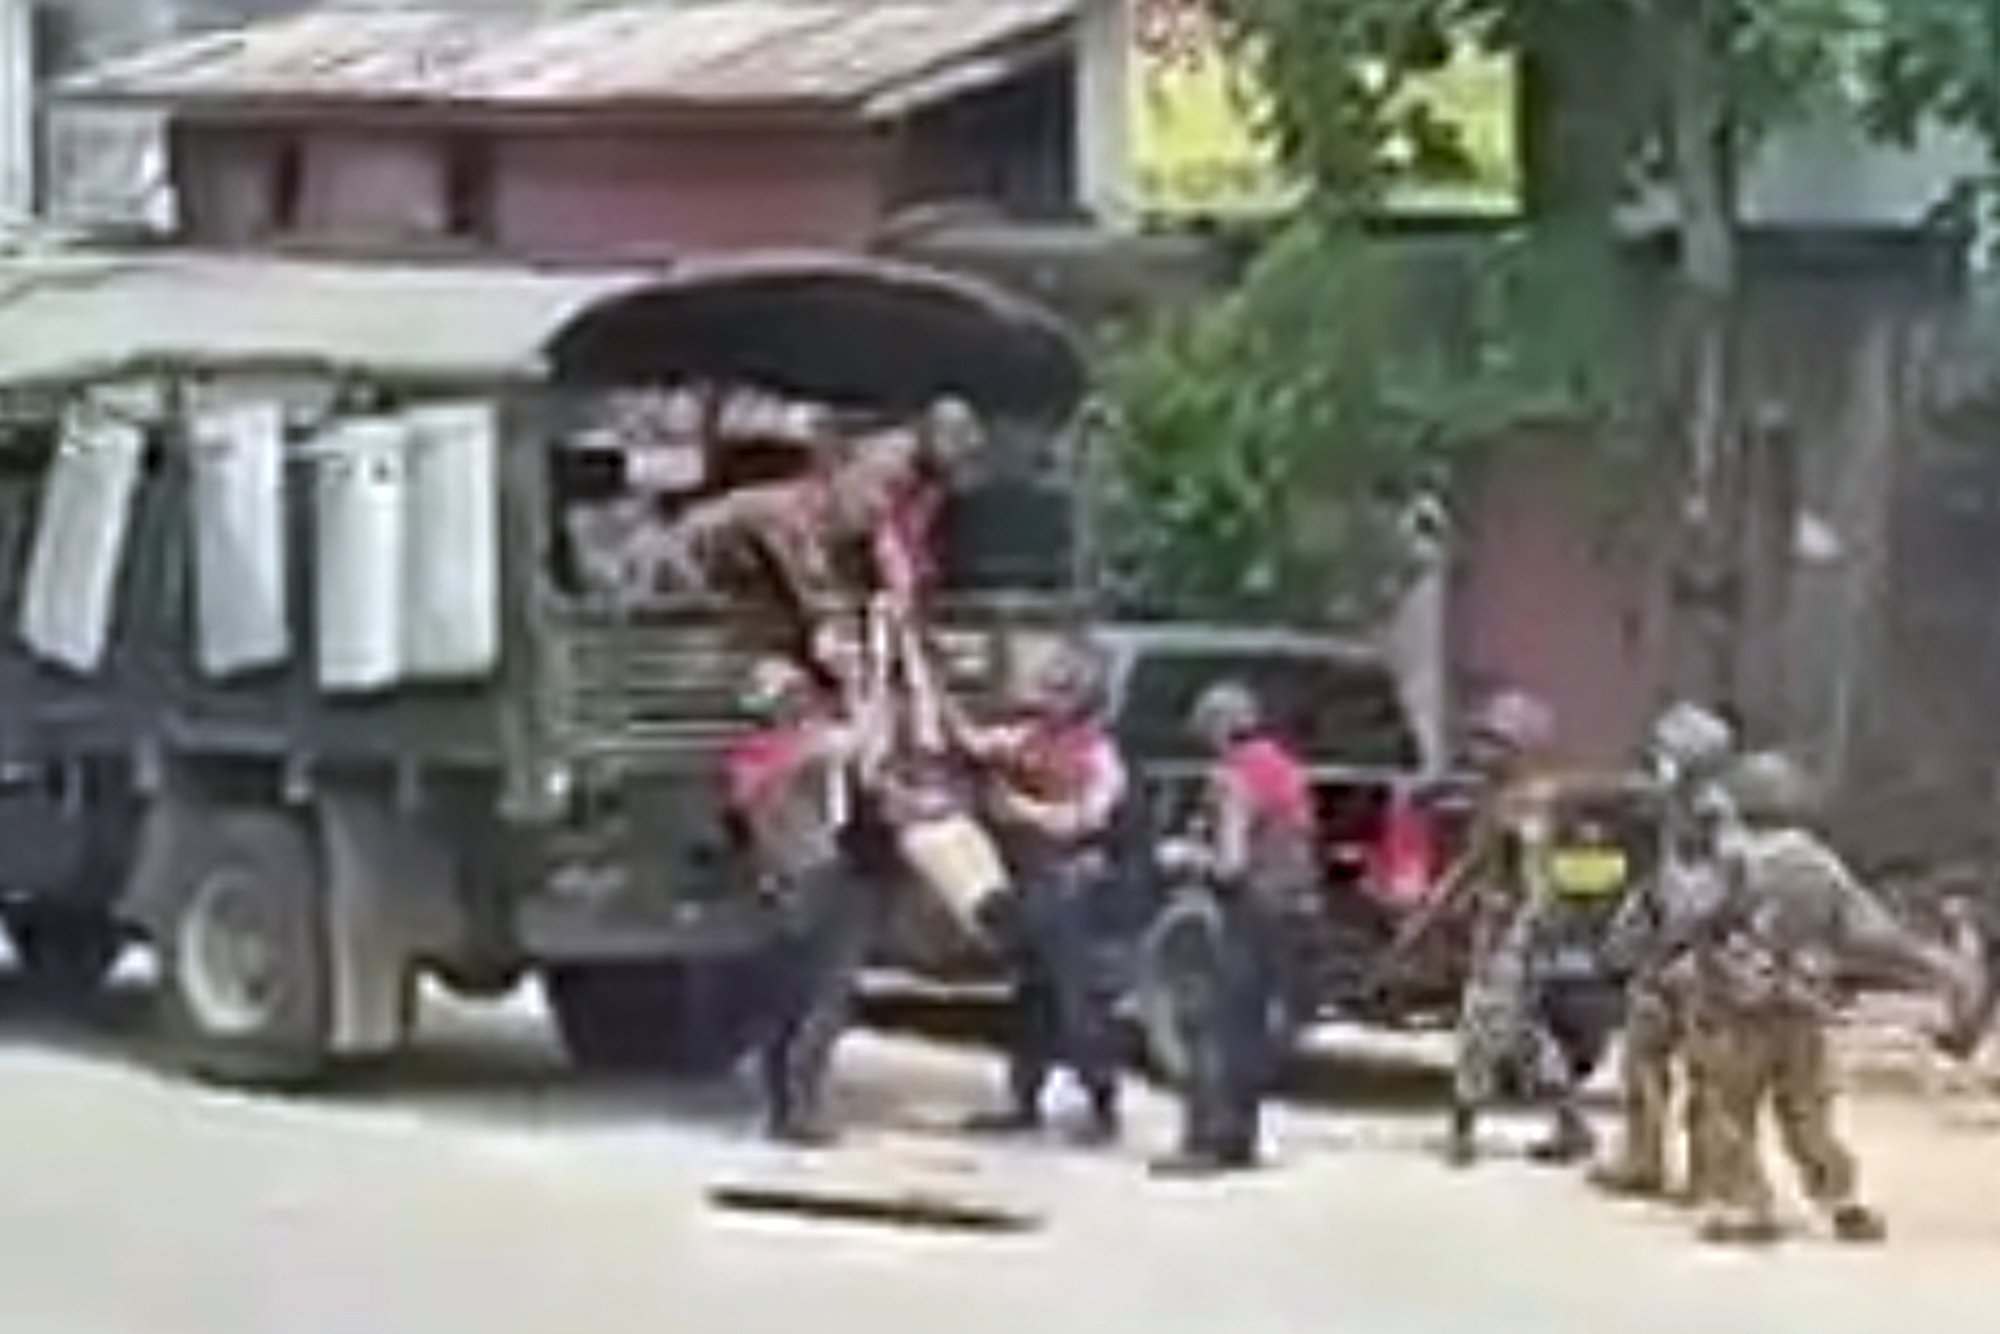 In this March 26, 2021 image from video obtained by The Associated Press, security forces pull the body of an unidentified individual into a military truck in Myeik, Myanmar. (AP Photo)